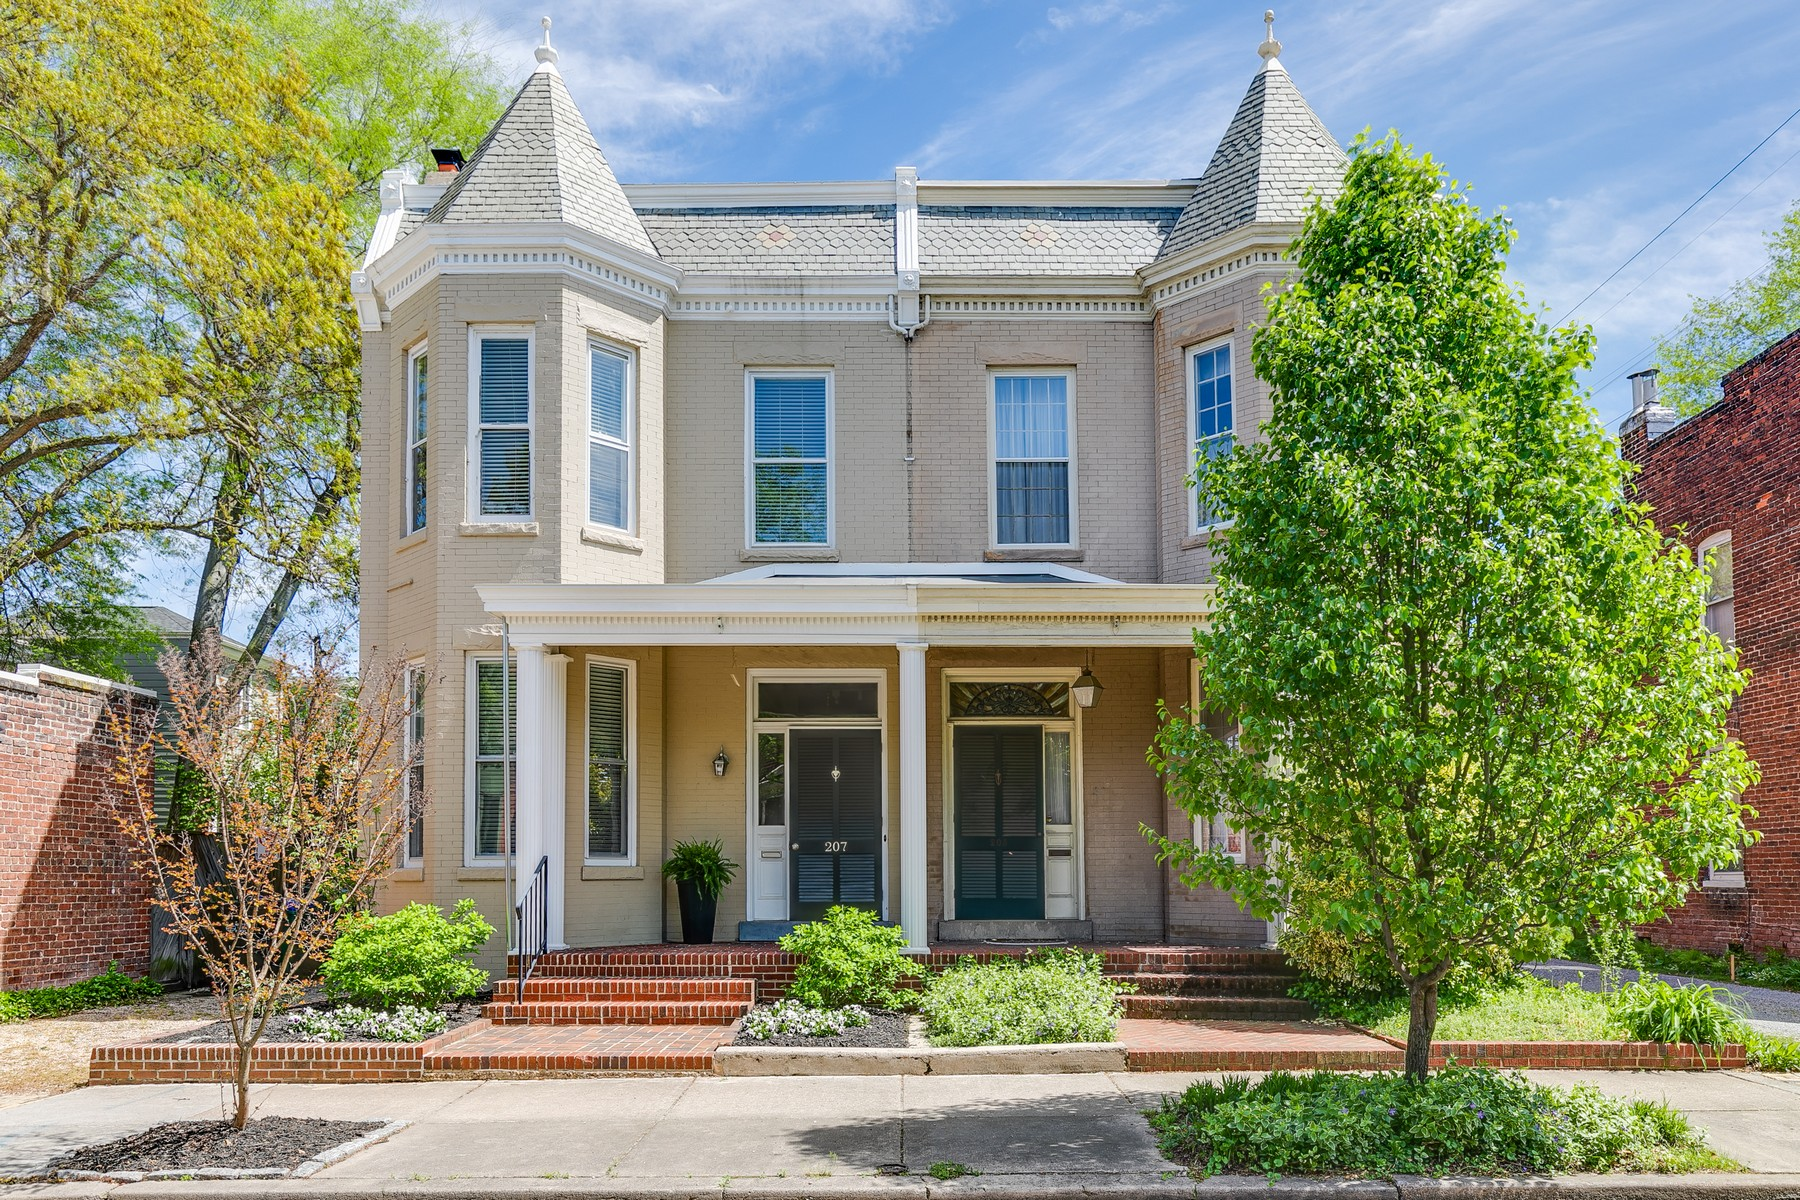 Single Family Home for Sale at Great Rowhouse in The Fan 207 N. Meadow St Richmond, Virginia 23220 United States